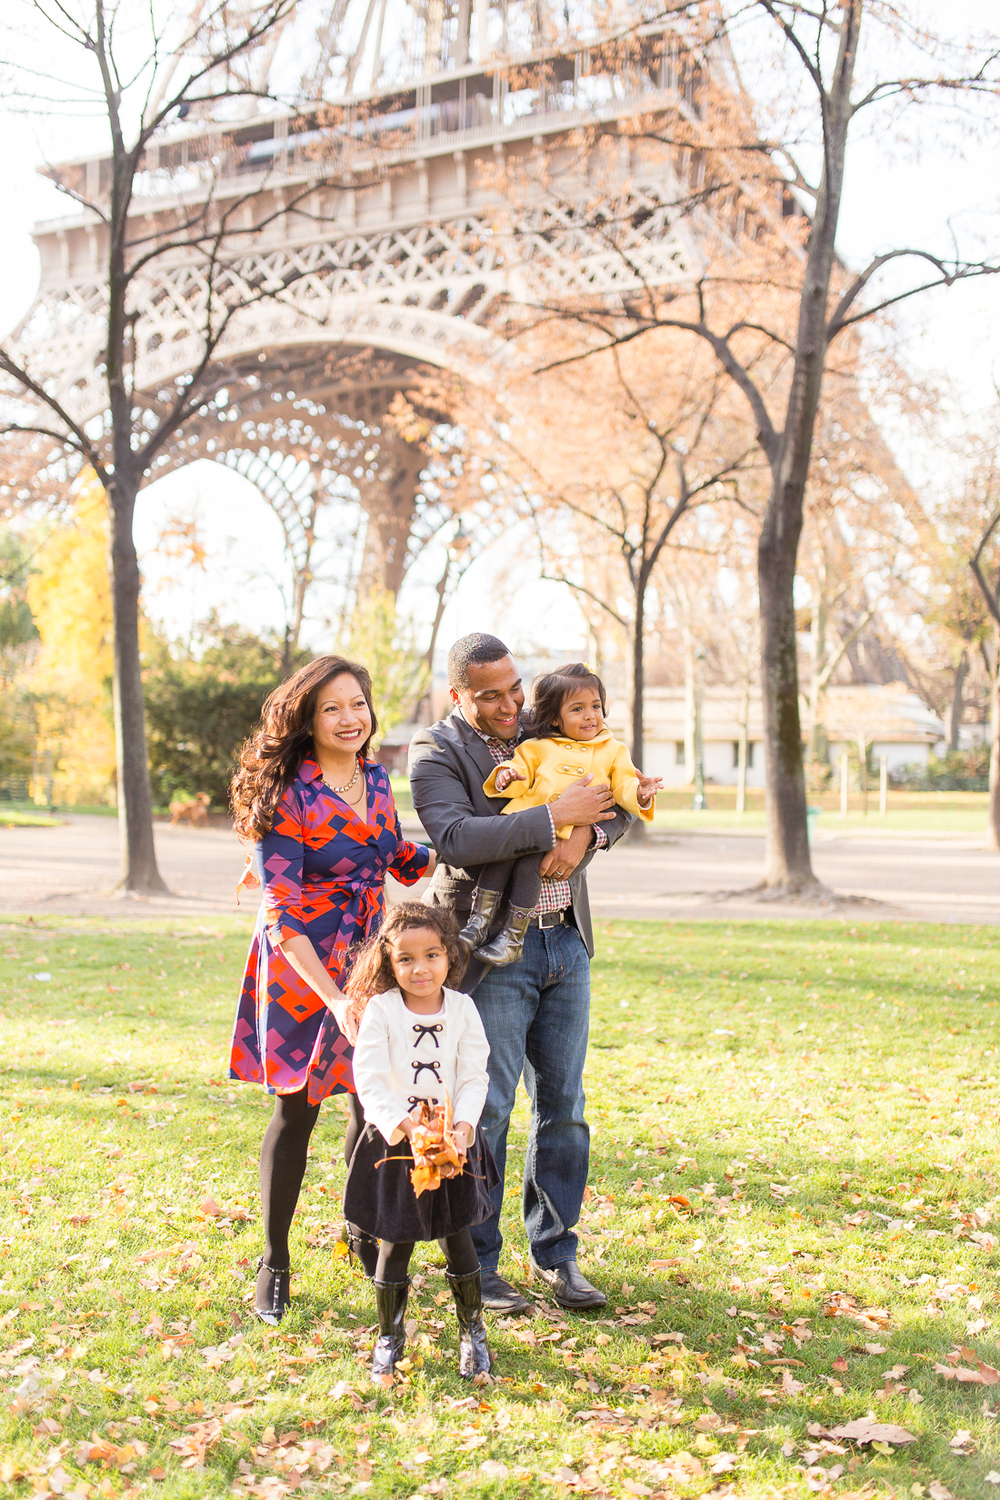 spring-fall-family-paris-eiffel-tower-photo-session-outfit-inspiratn-6